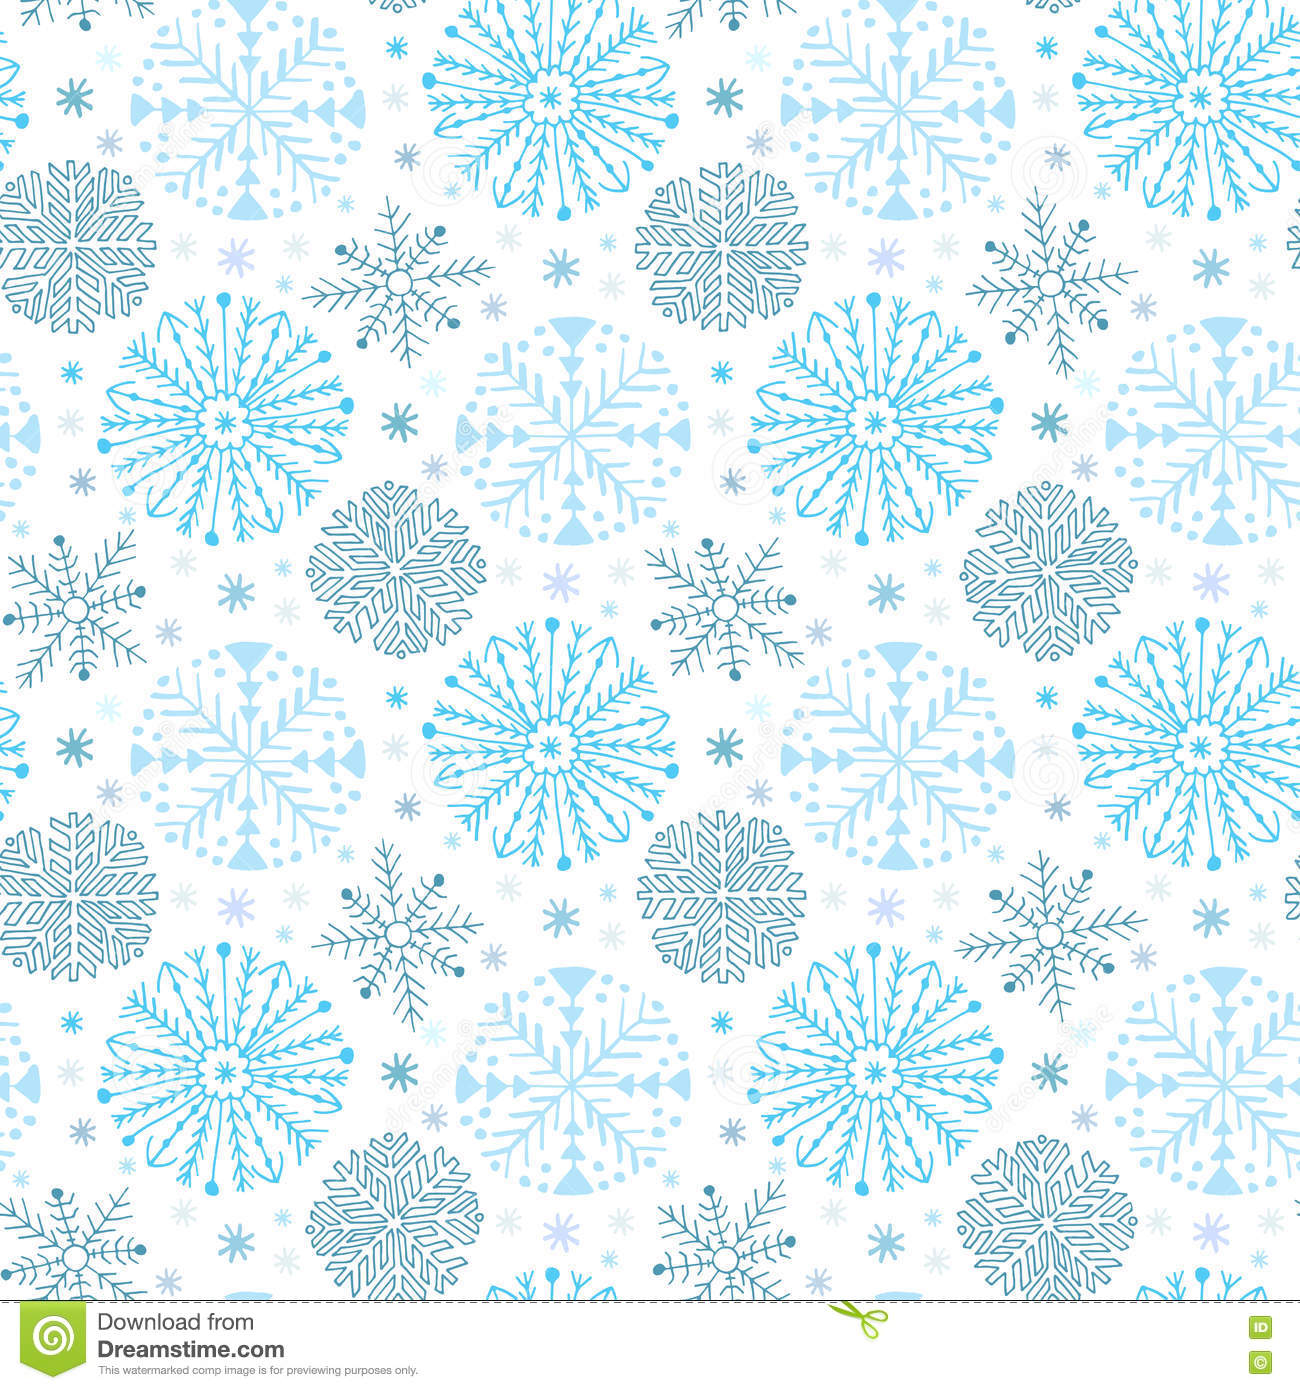 7dab6522392 Snowflakes seamless pattern. Winter background decoration. Christmas and  New Year design wrapping paper design